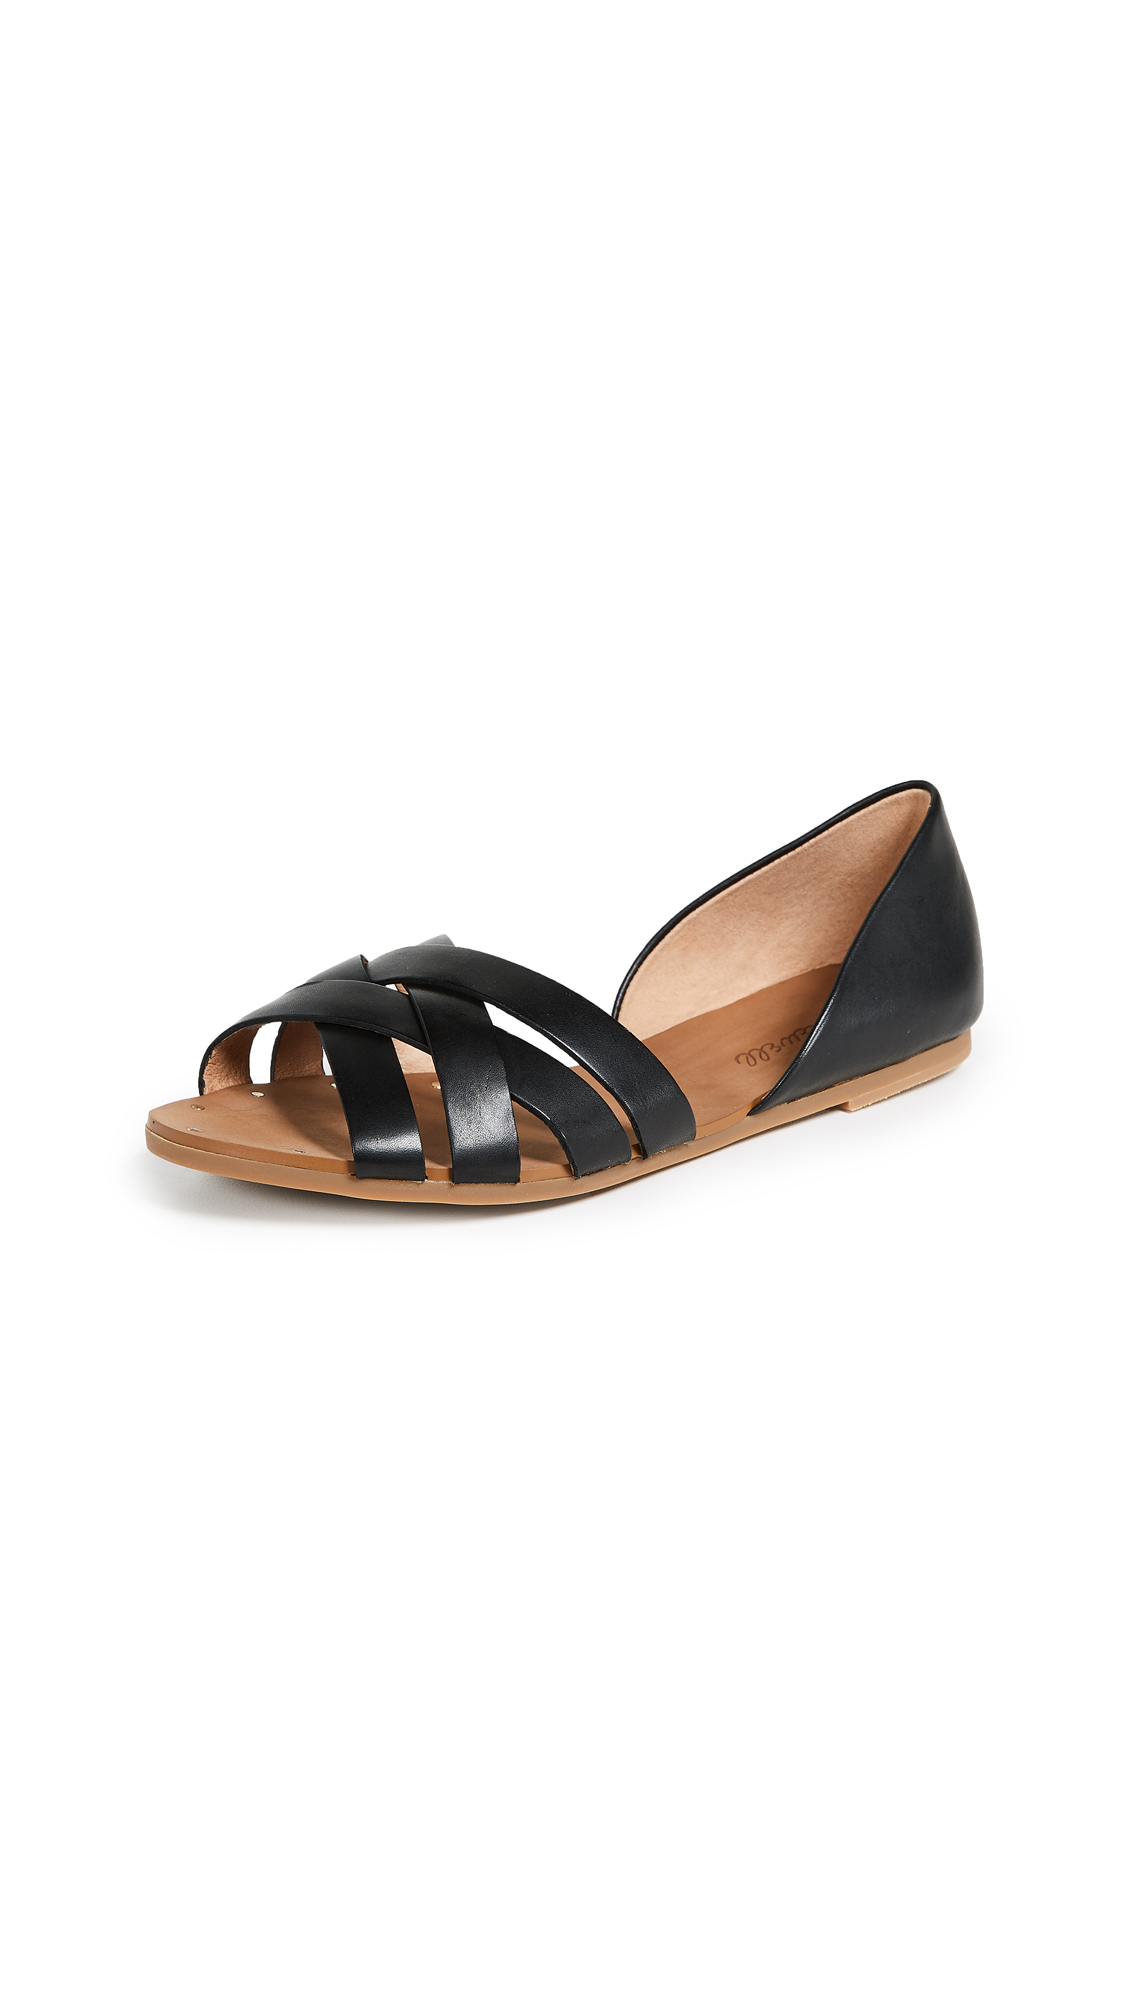 Madewell The Donovan Sandals - True Black